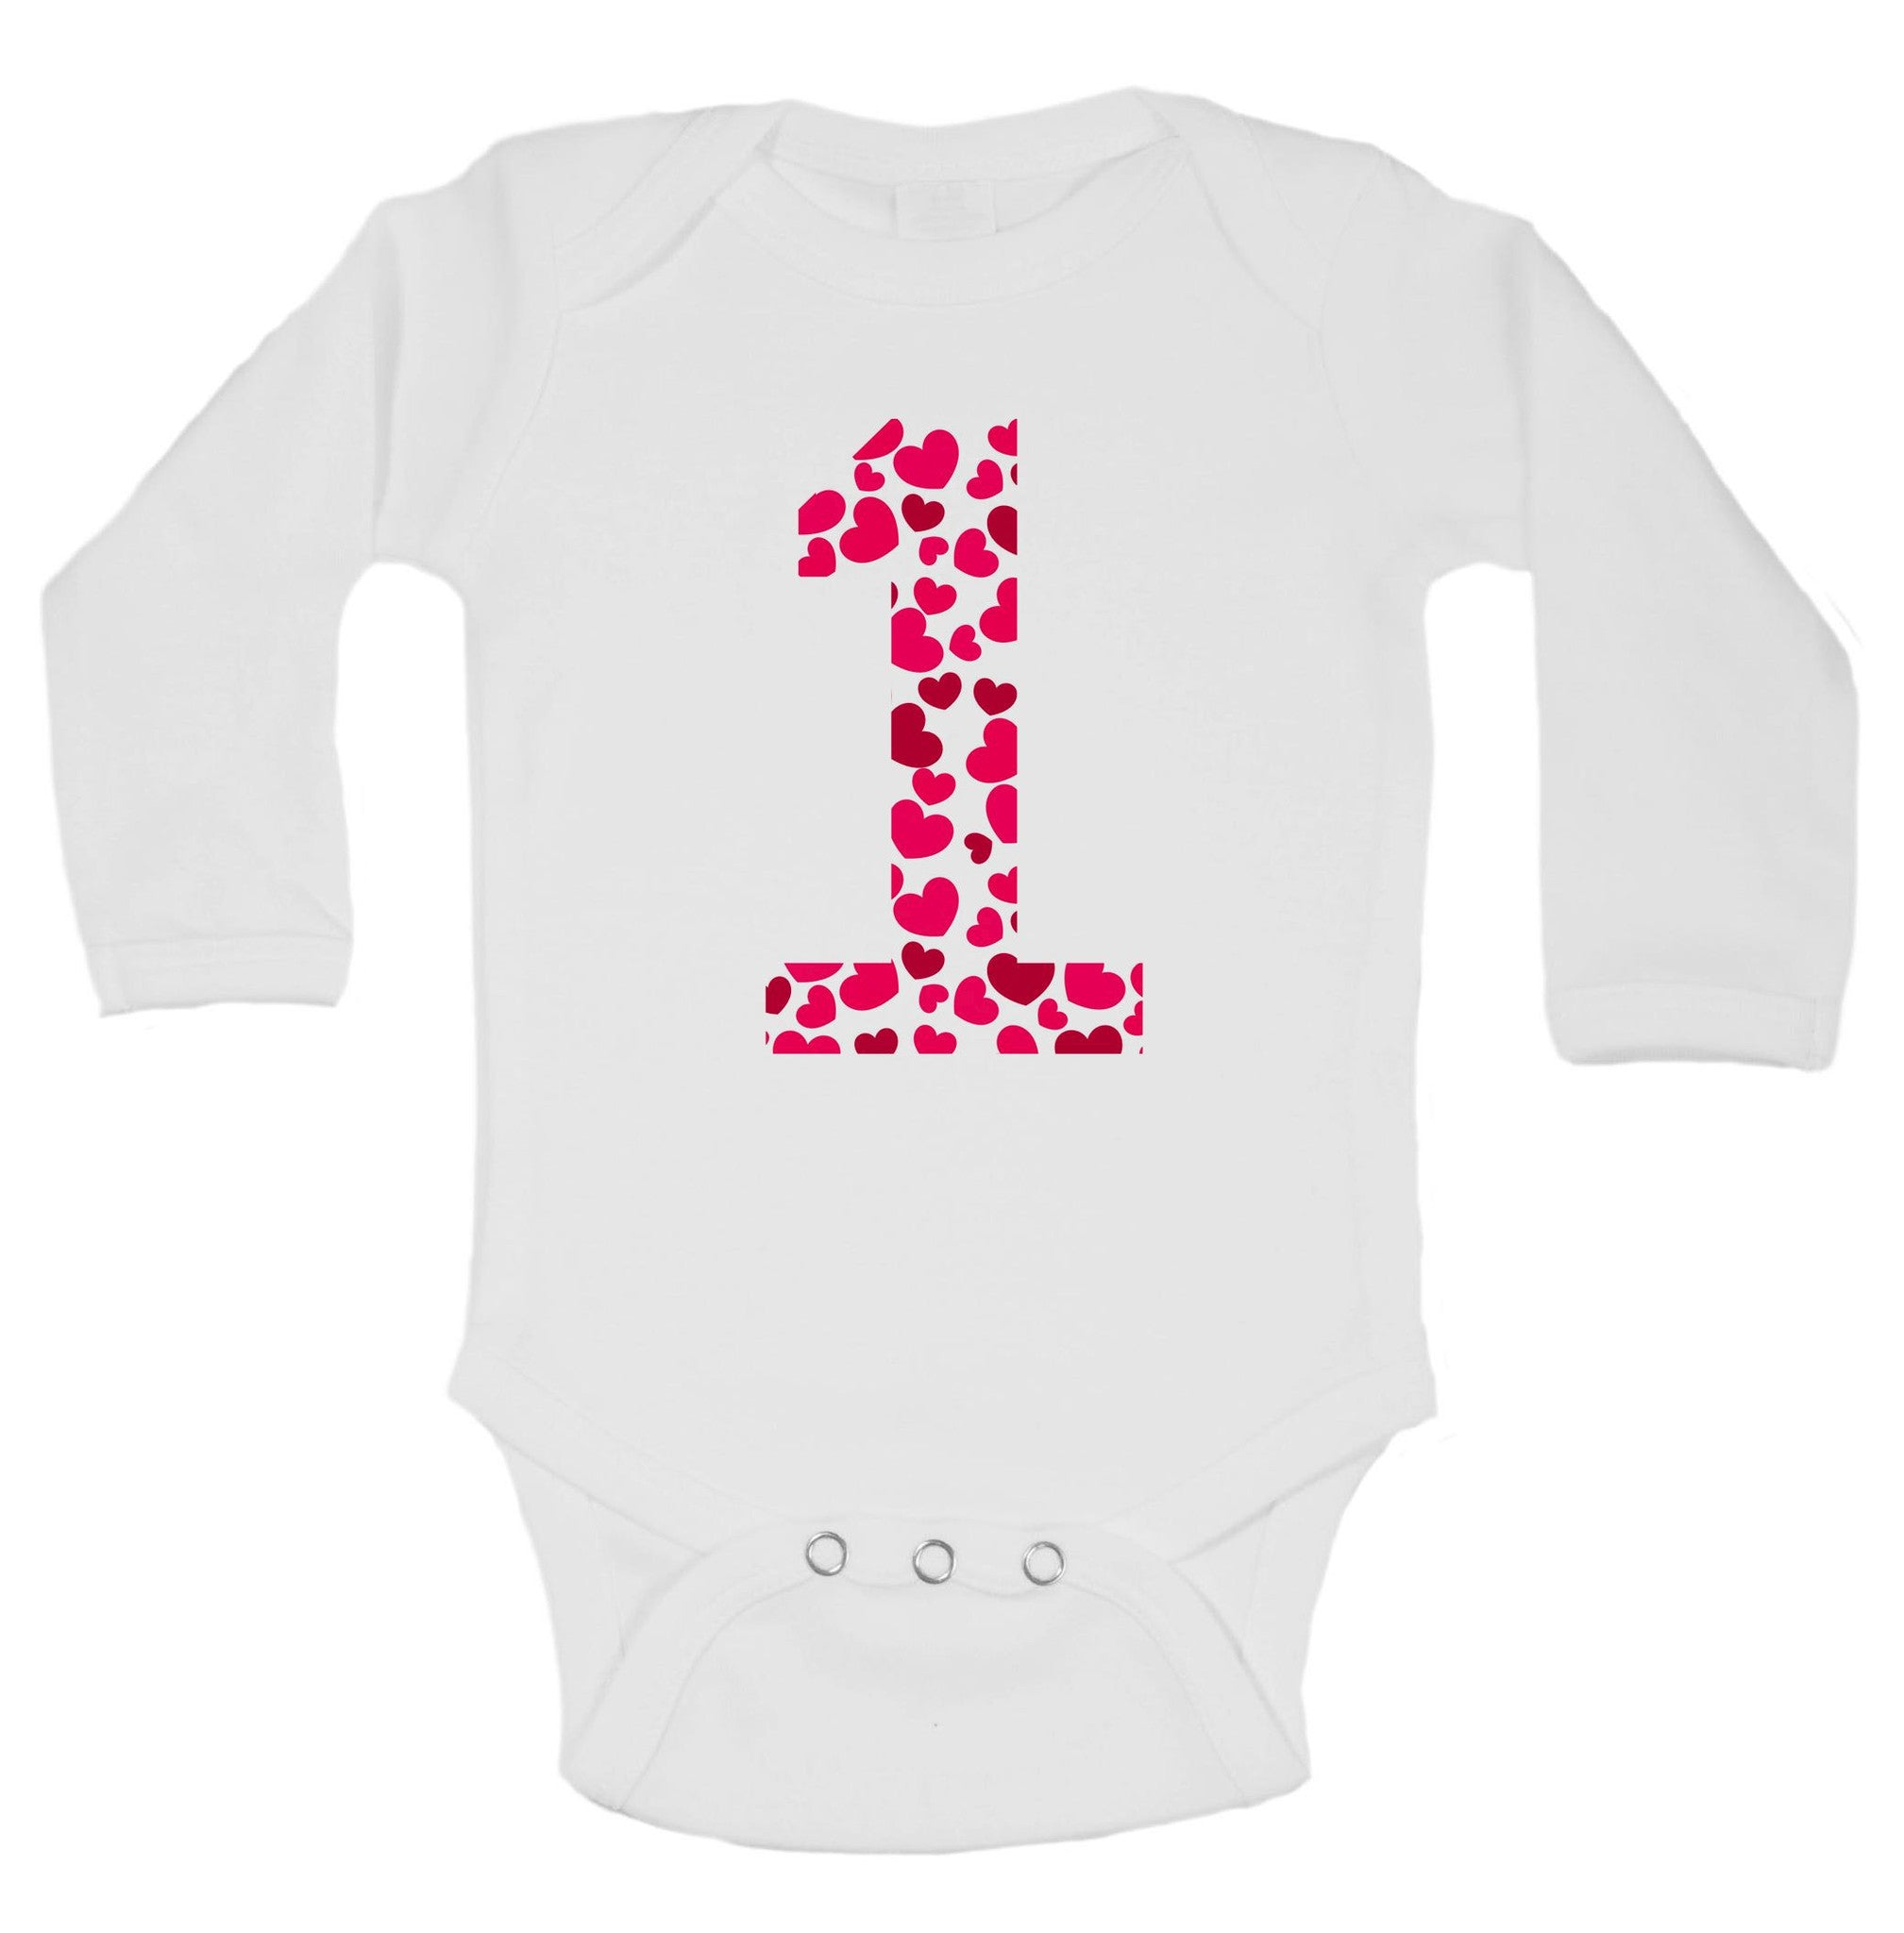 Love In One Funny Kids Onesie - B55 - Funny Shirts Tank Tops Burnouts and Triblends  - 1